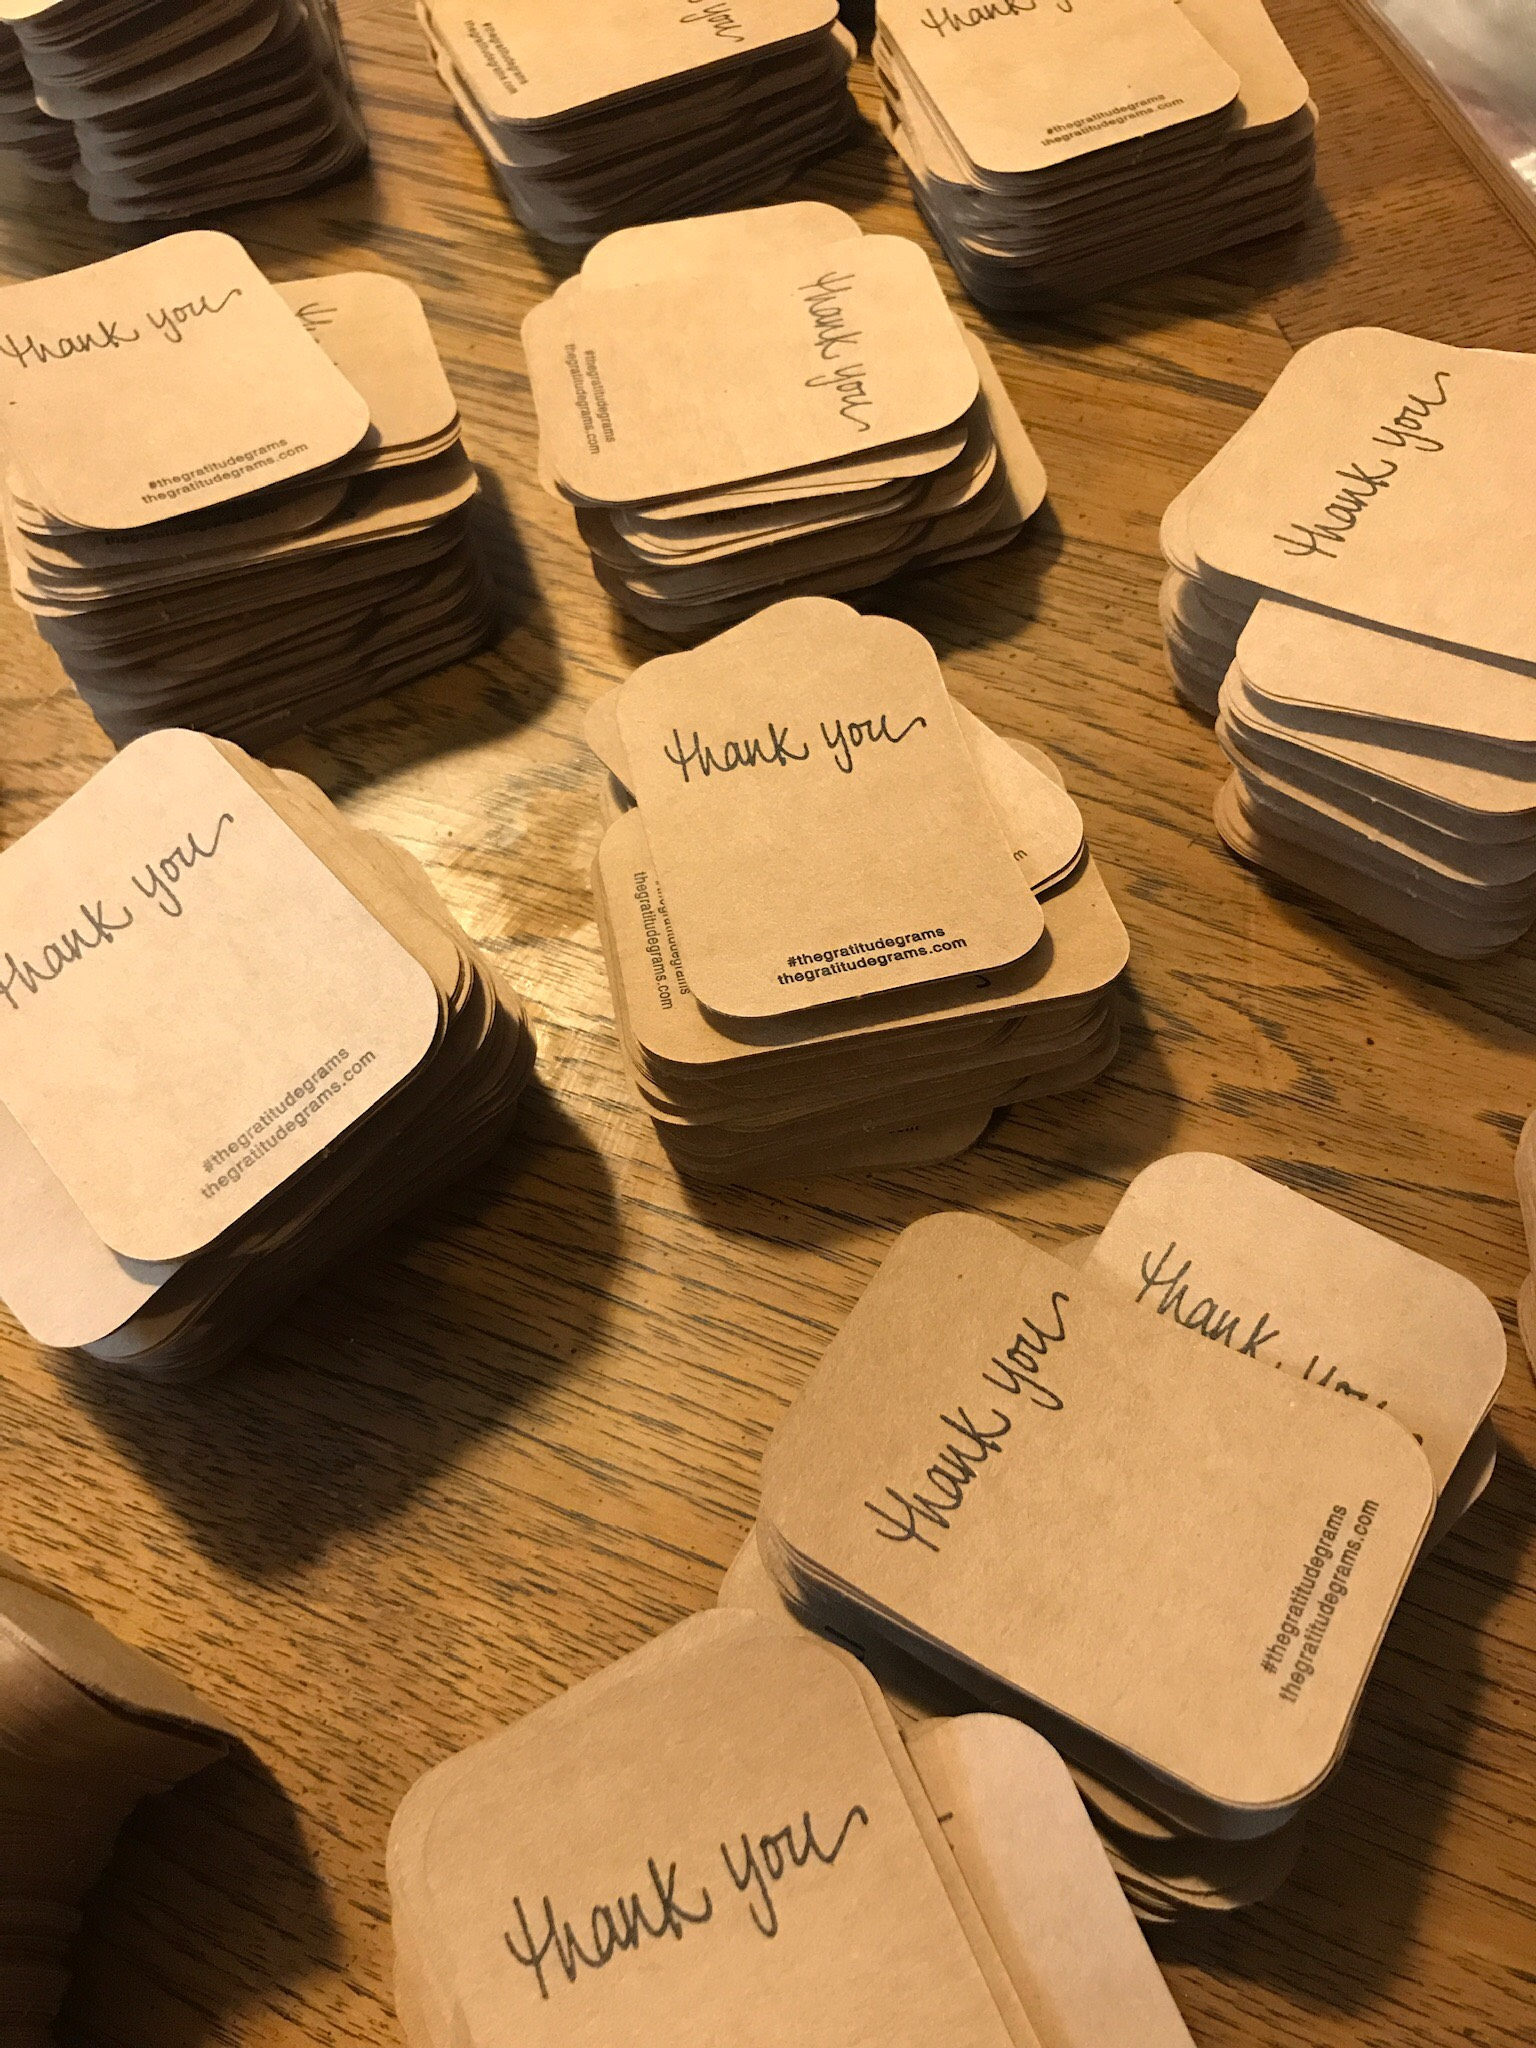 The Gratitudegrams - Gratitudegrams are hand-sized tokens of appreciation made from recycled kraft paper. It is designed and produced to encourage people to spread their gratitude and kindness with other people.Learn More